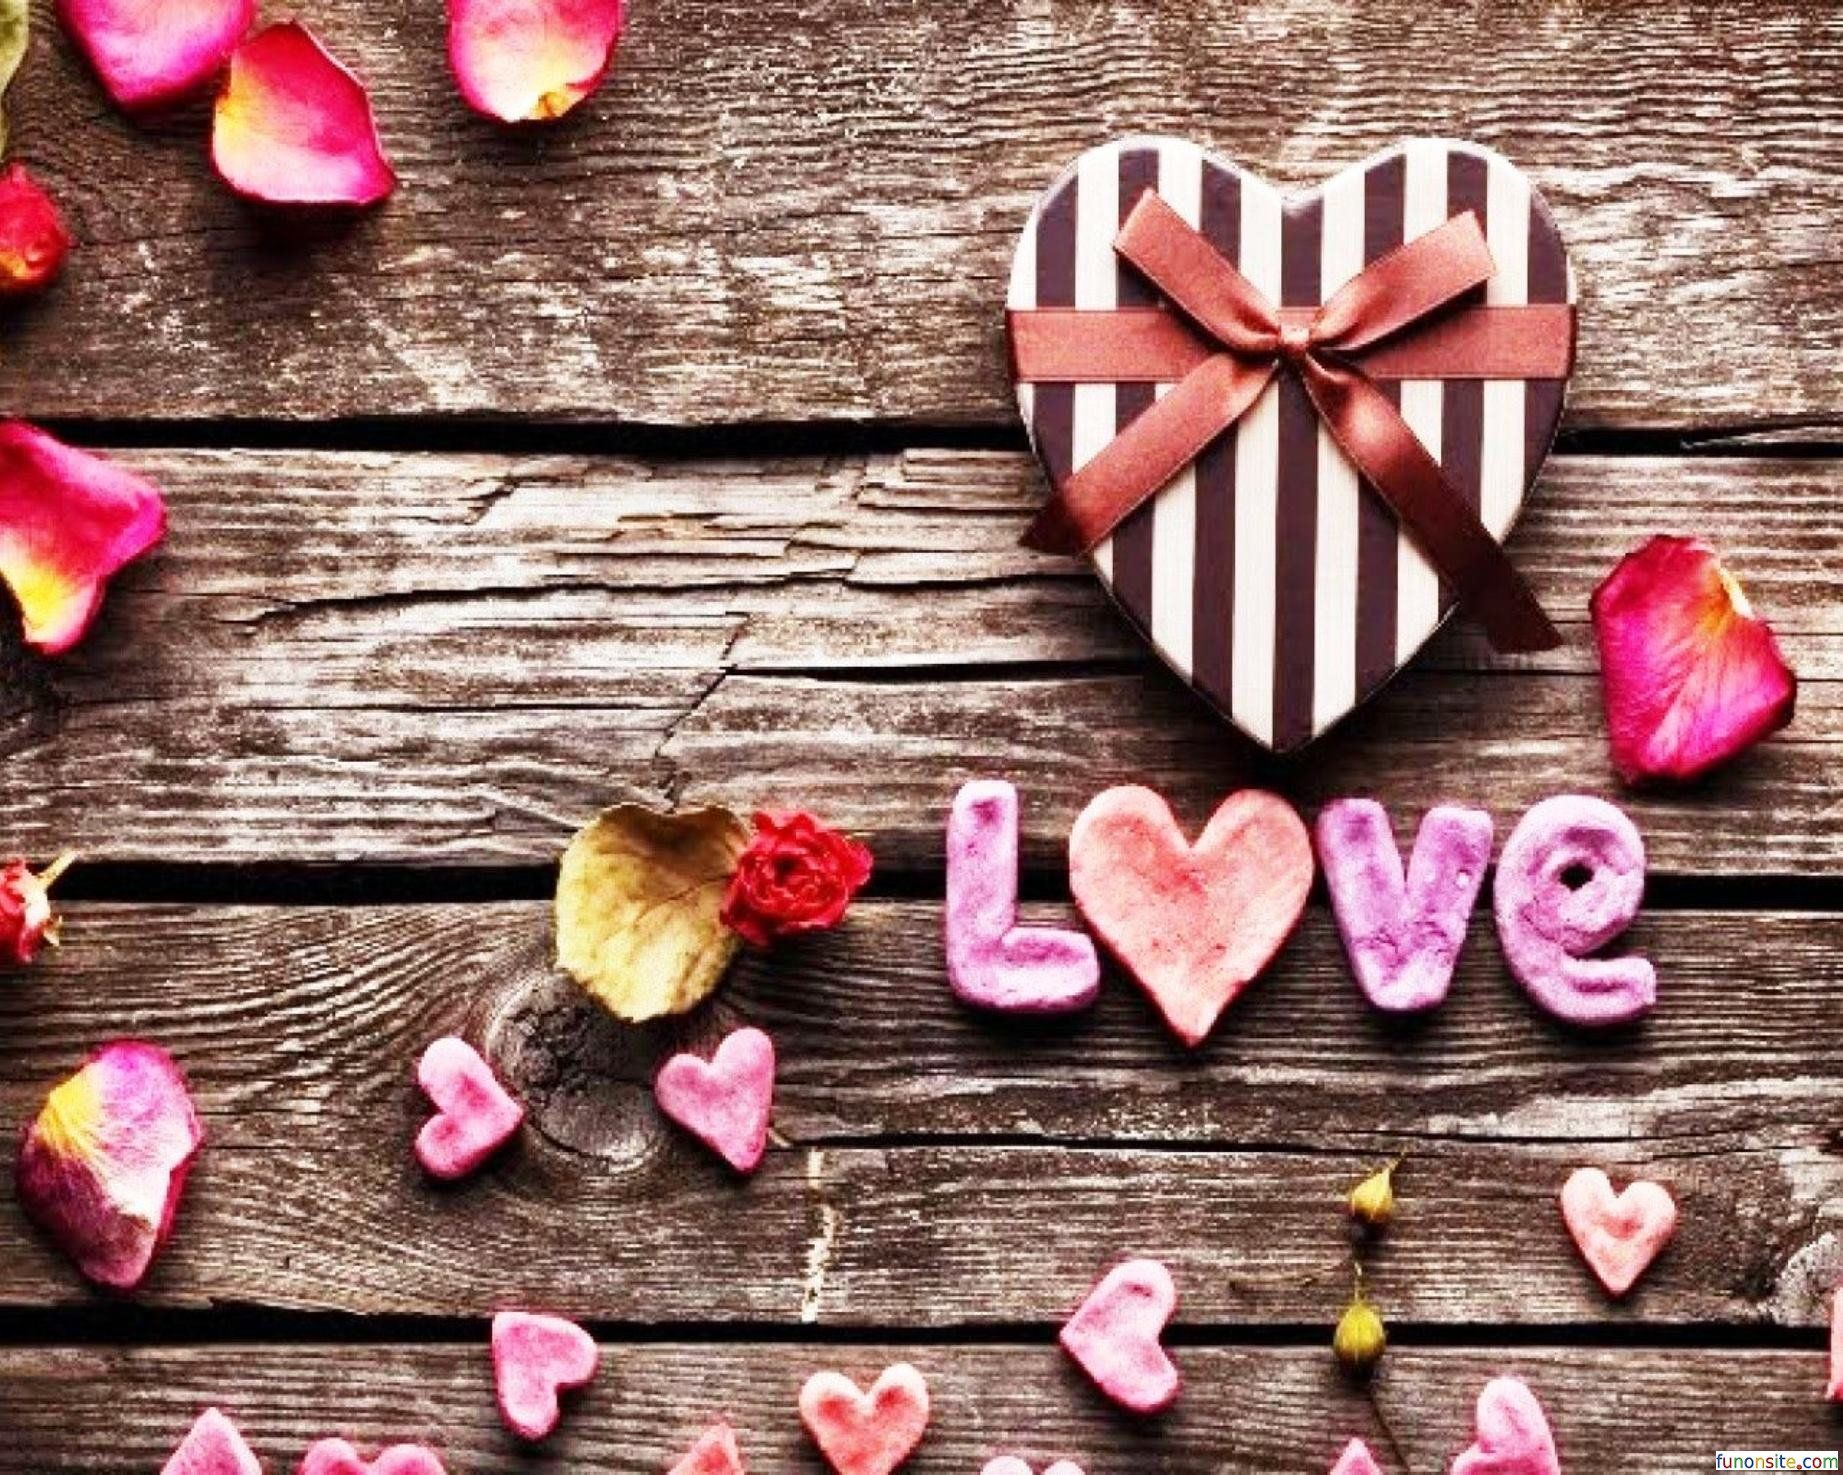 Image of: Love Wallpapers New Cute Love Wallpapers For Desktop Love Aliexpress New Cute Love Wallpapers For Desktop Love Funonsite In 2019